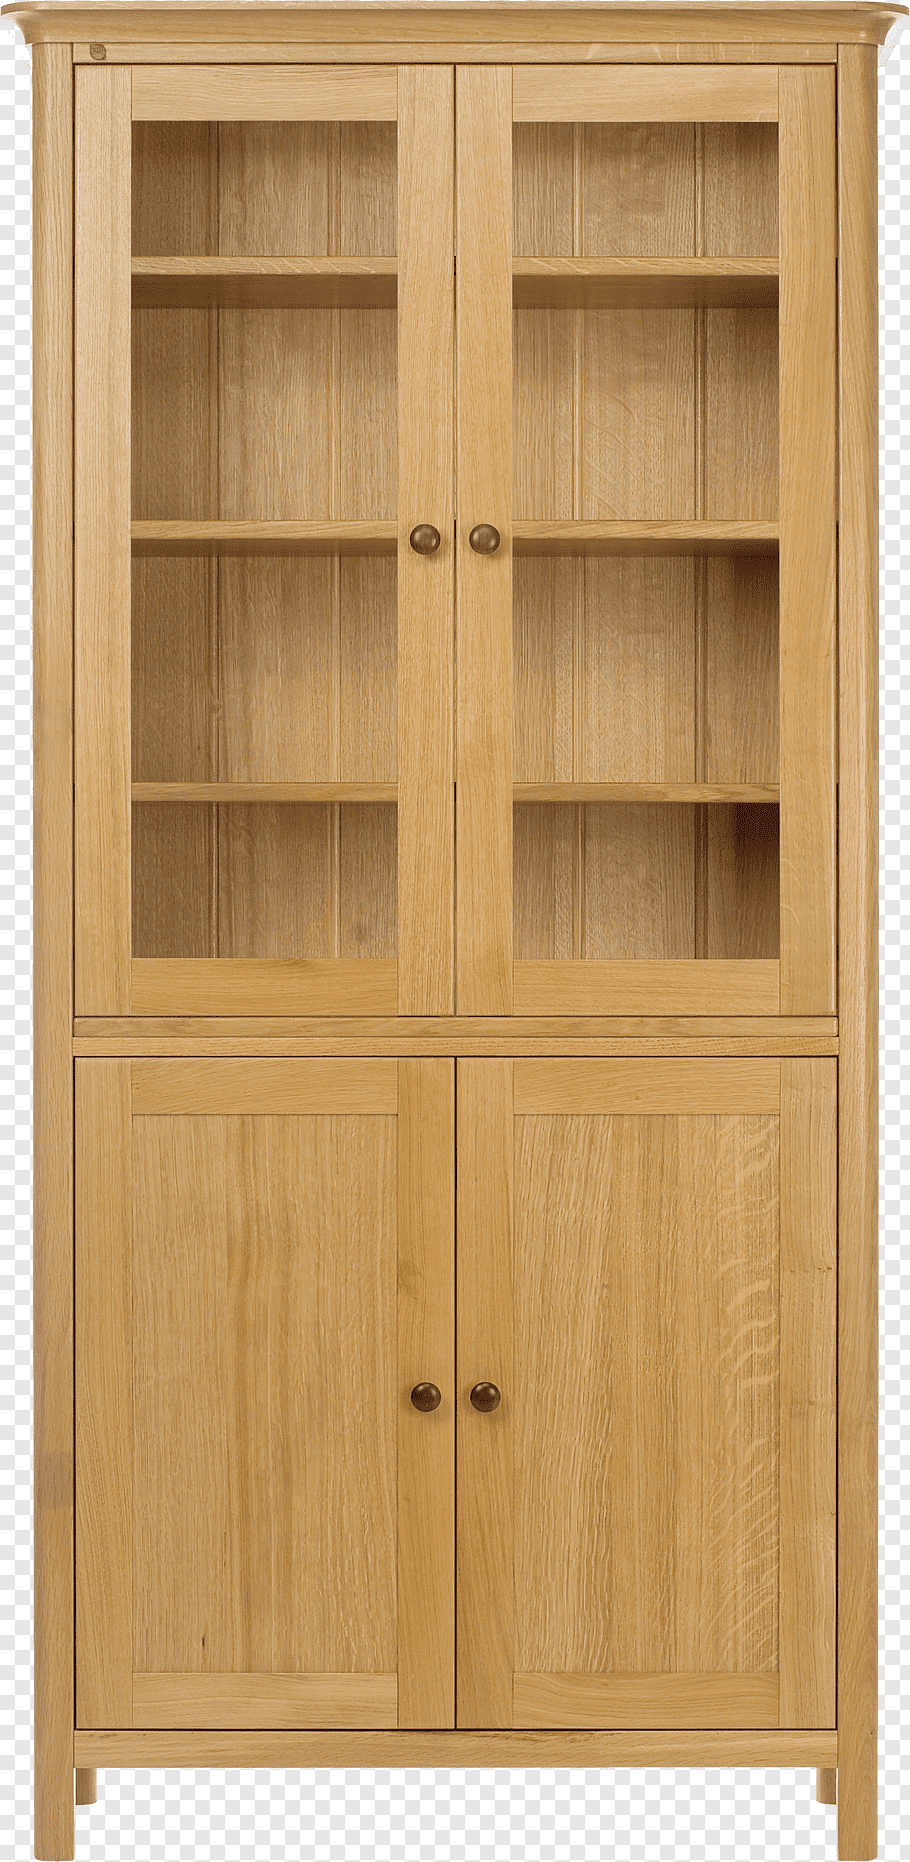 Brown wooden display cabinet, Pantry Cabinetry Door Wood.